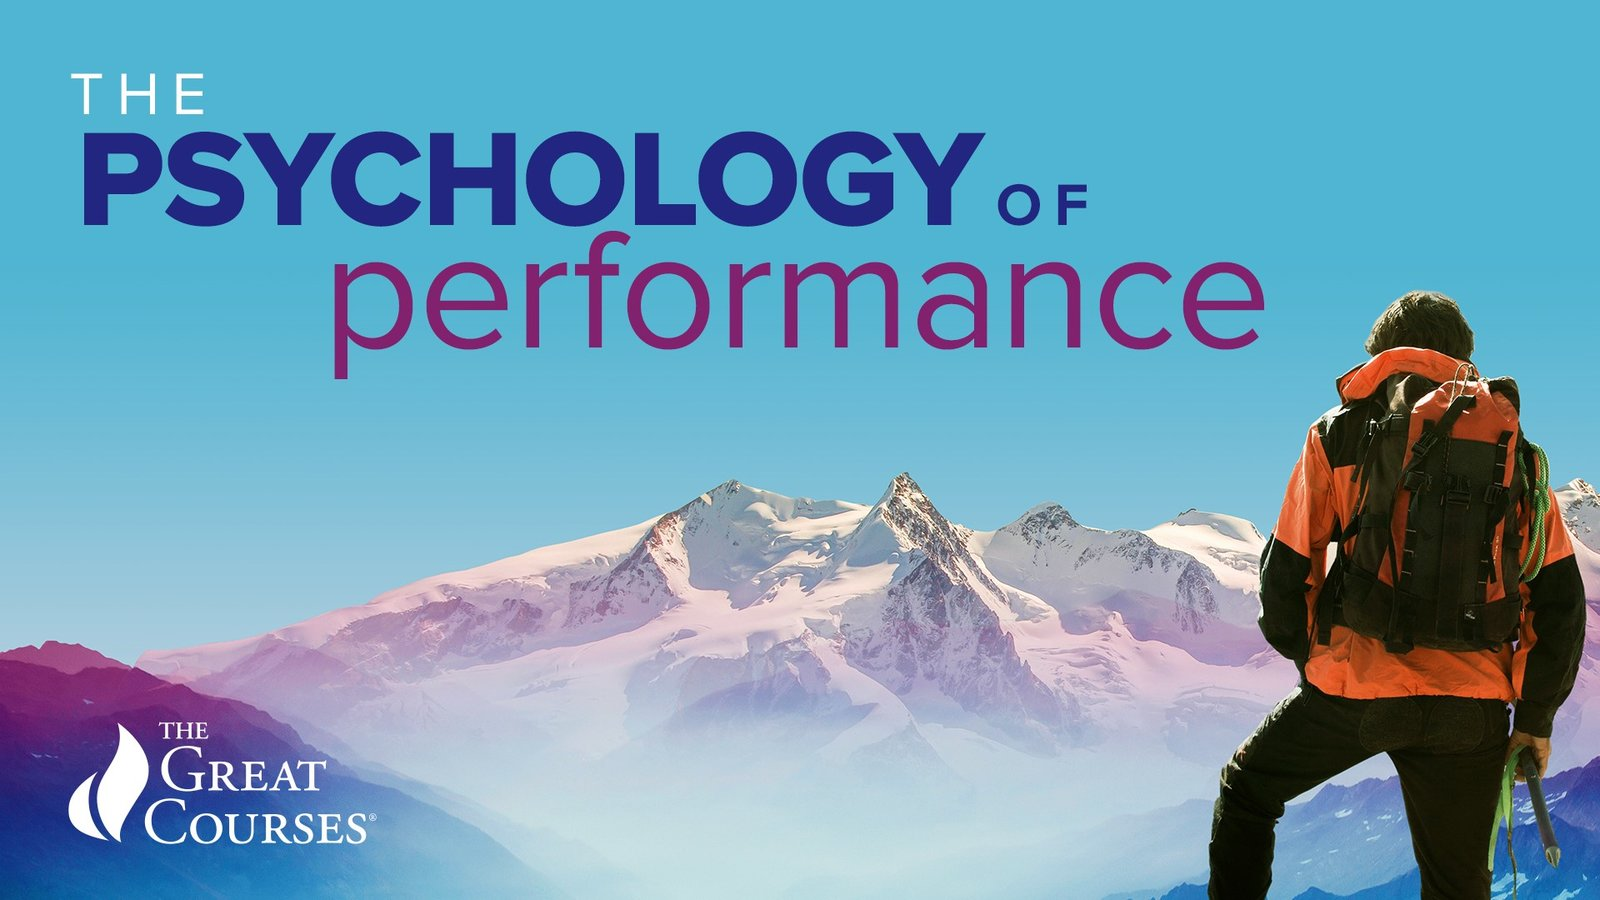 The Psychology of Performance - How to Be Your Best in Life